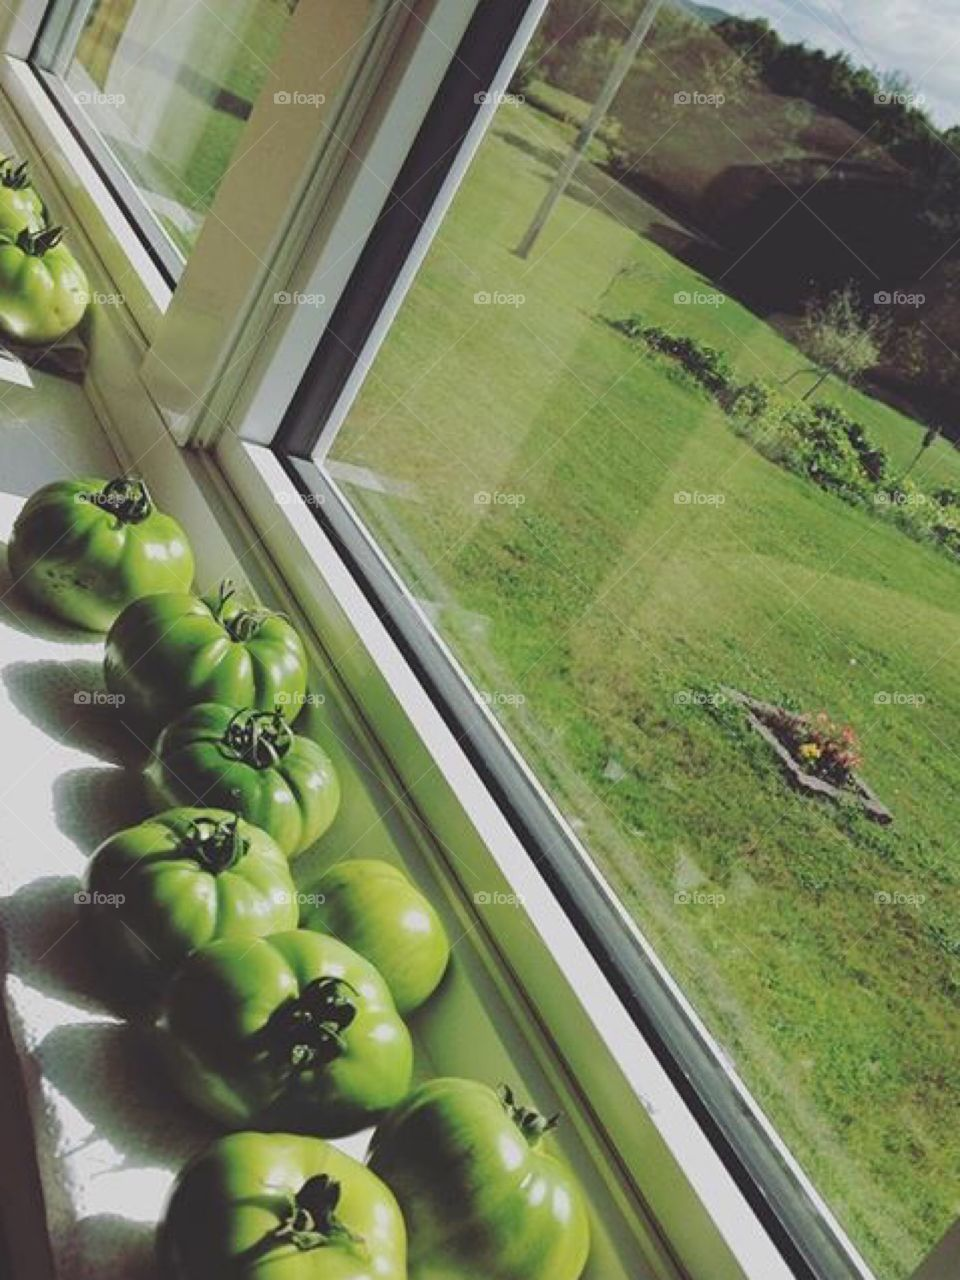 Green tomatoes ripening on a window sill. Over looking garden.